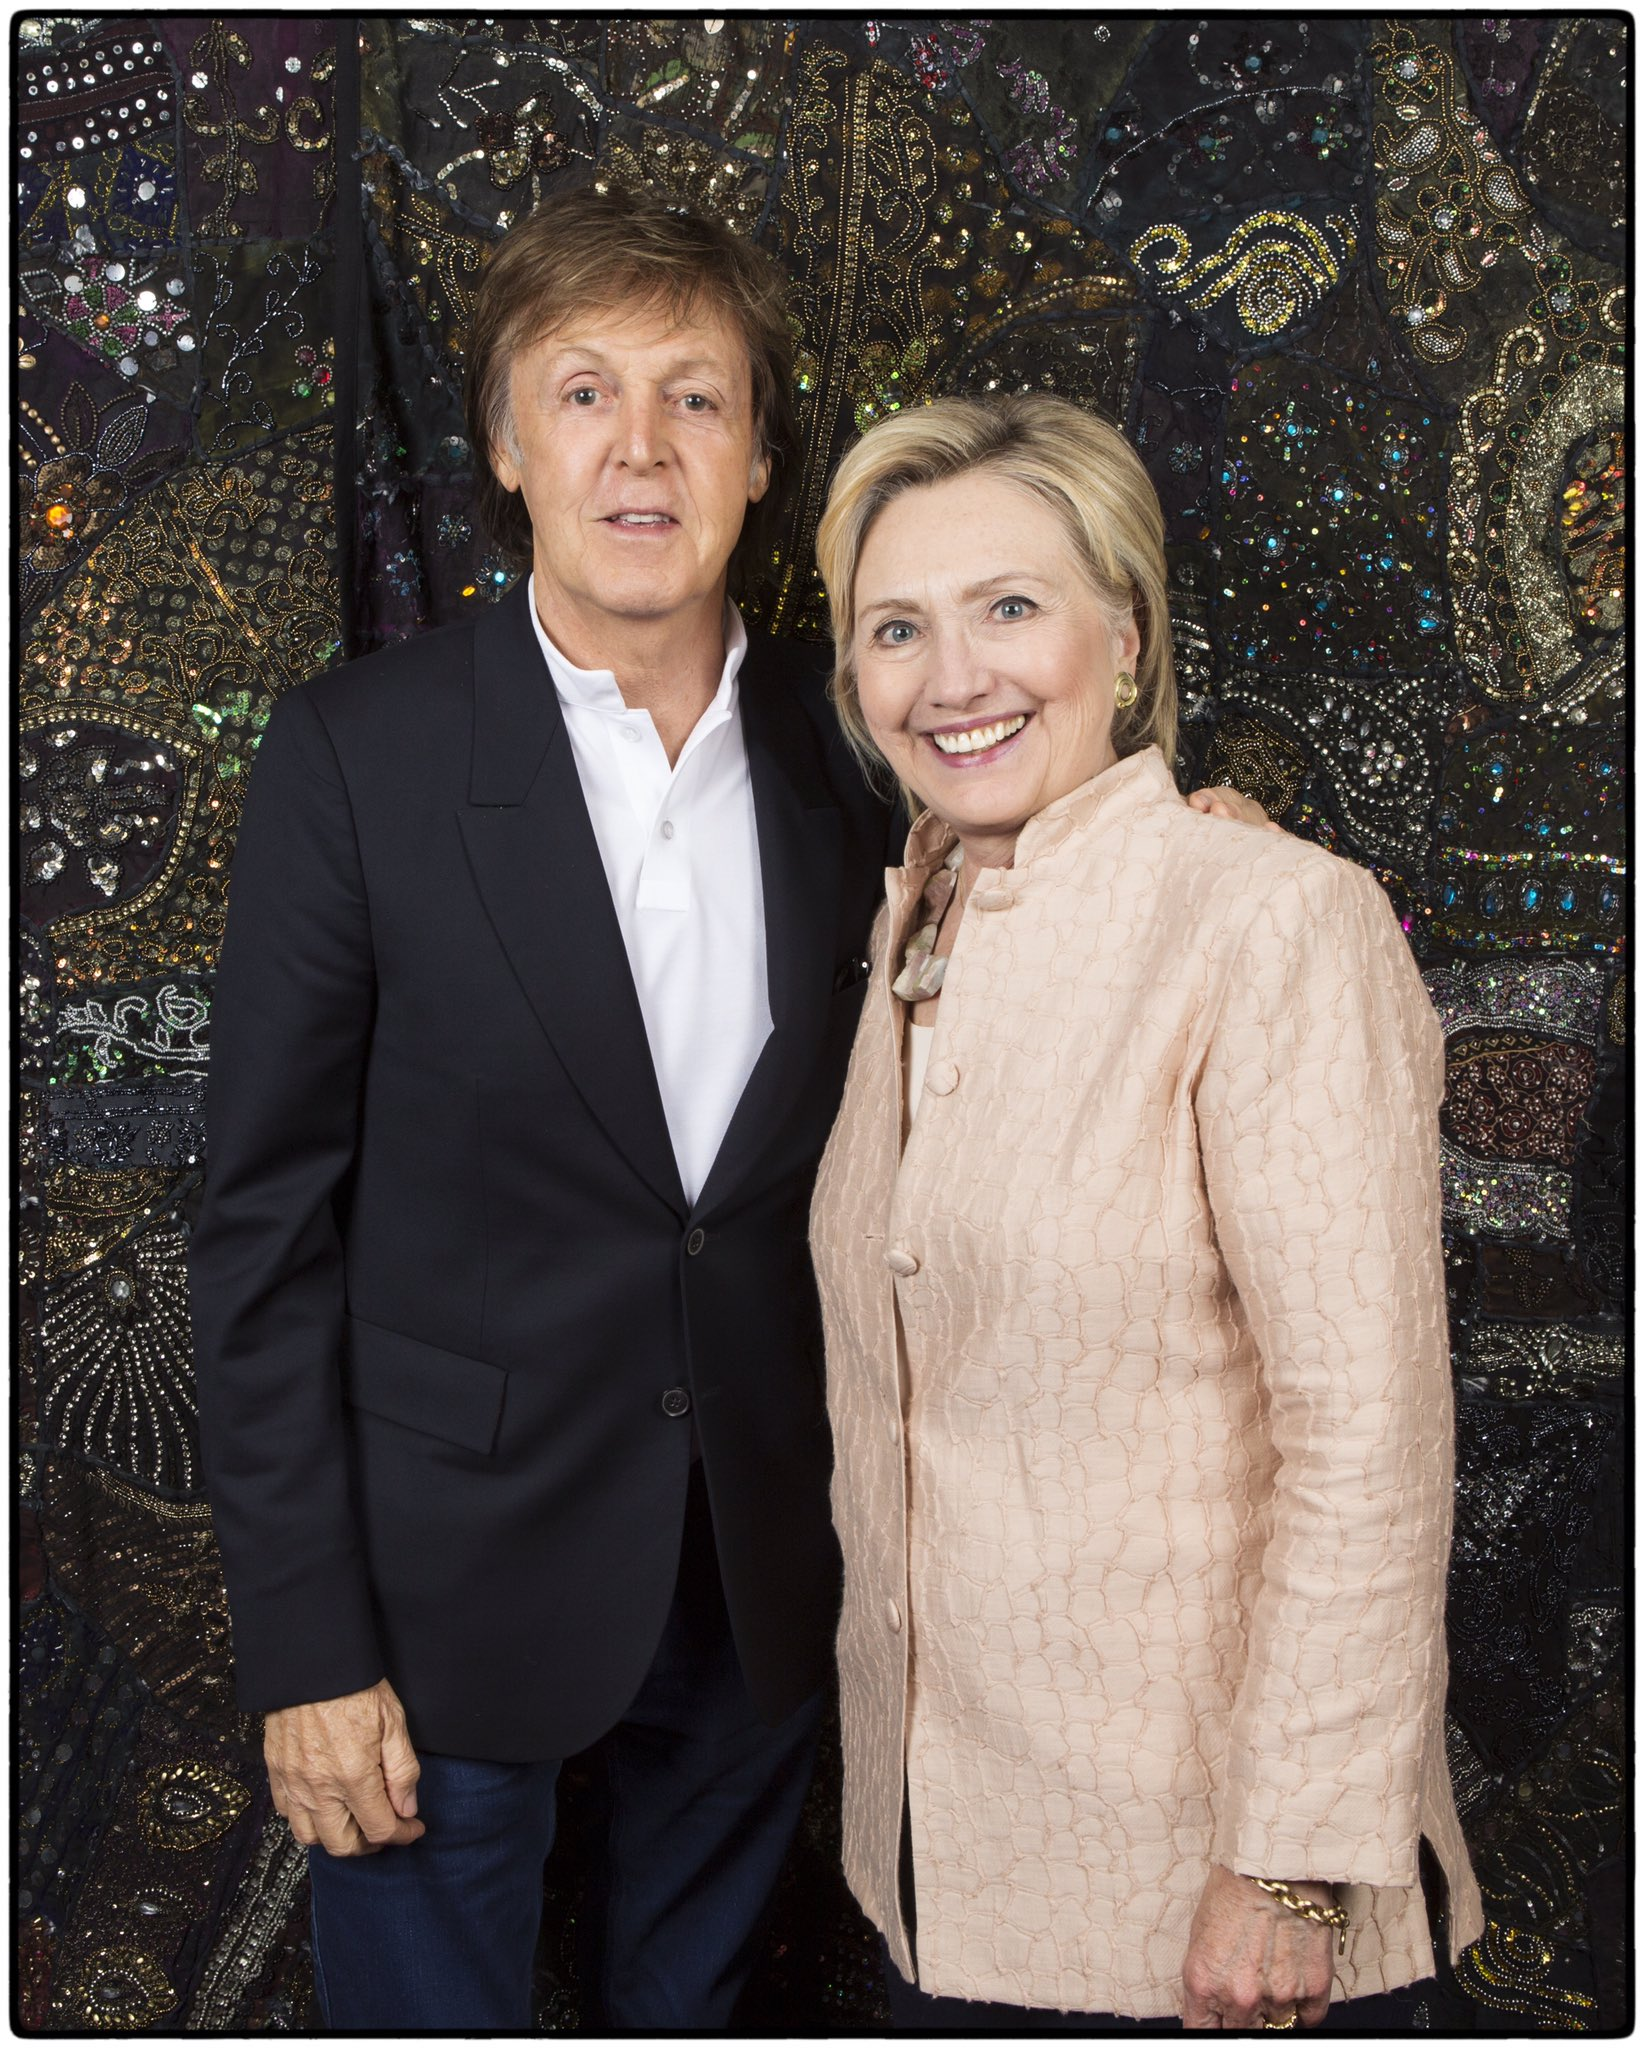 Paul McCartney apoya a Hillary Clinton